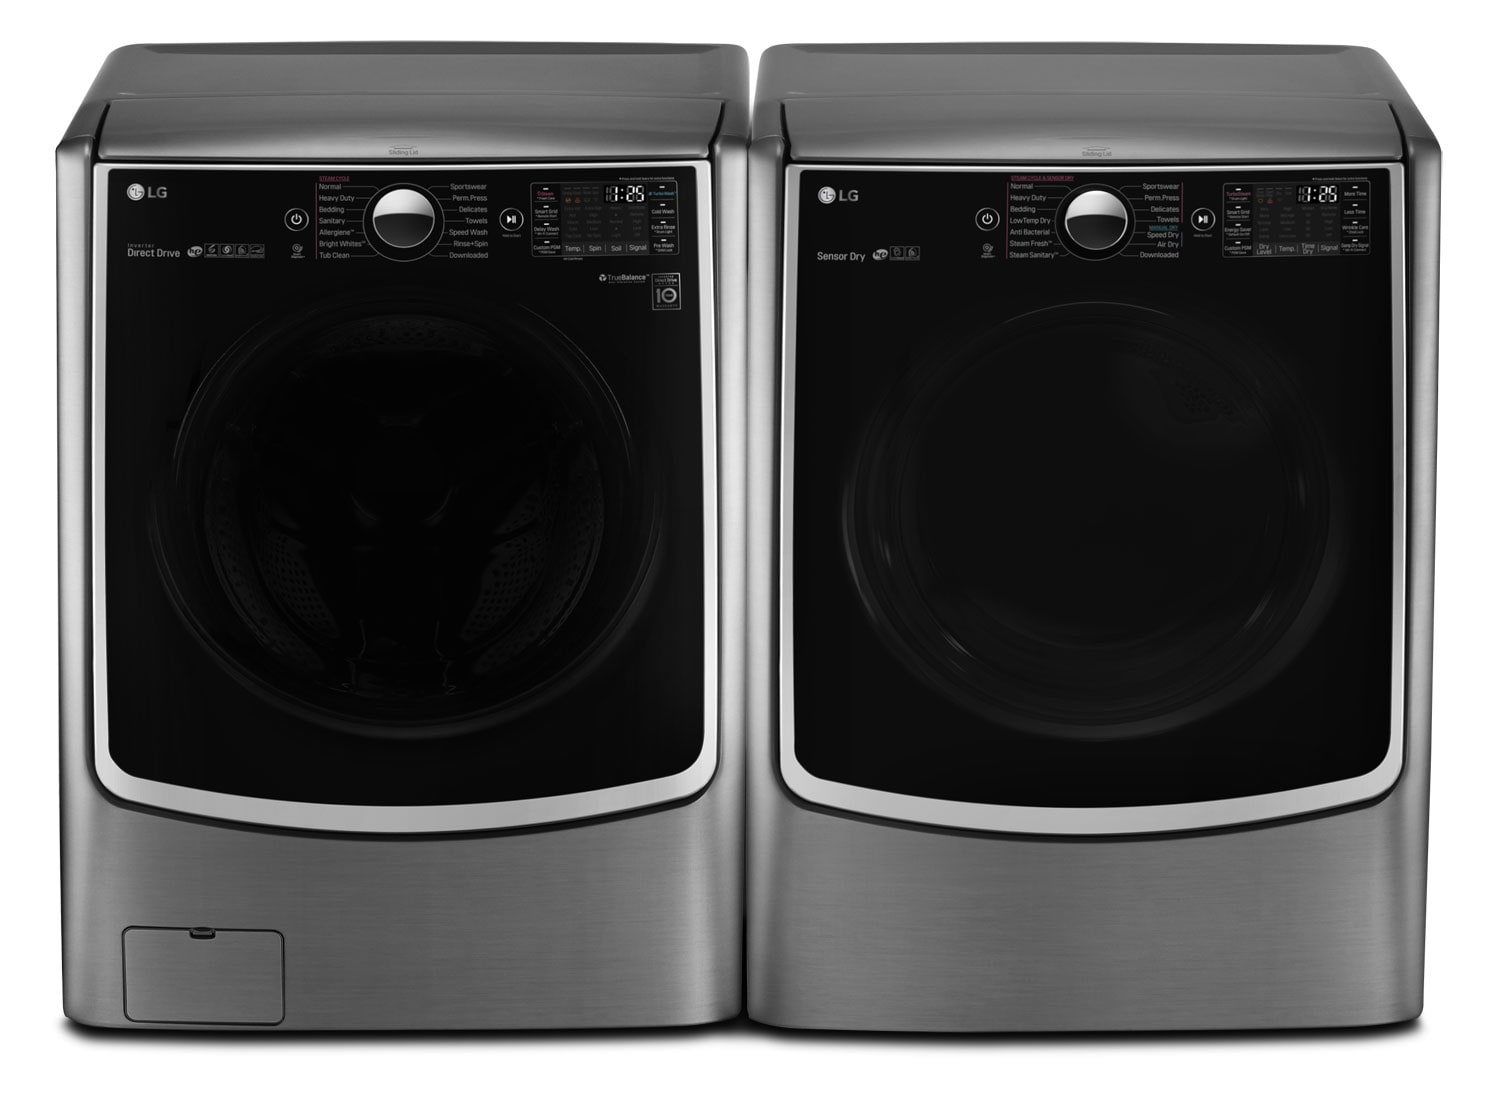 LG 5.2 Cu. Ft. Front-Load Steam® Washer and 7.4 Cu. Ft. Gas Dryer - Graphite Steel